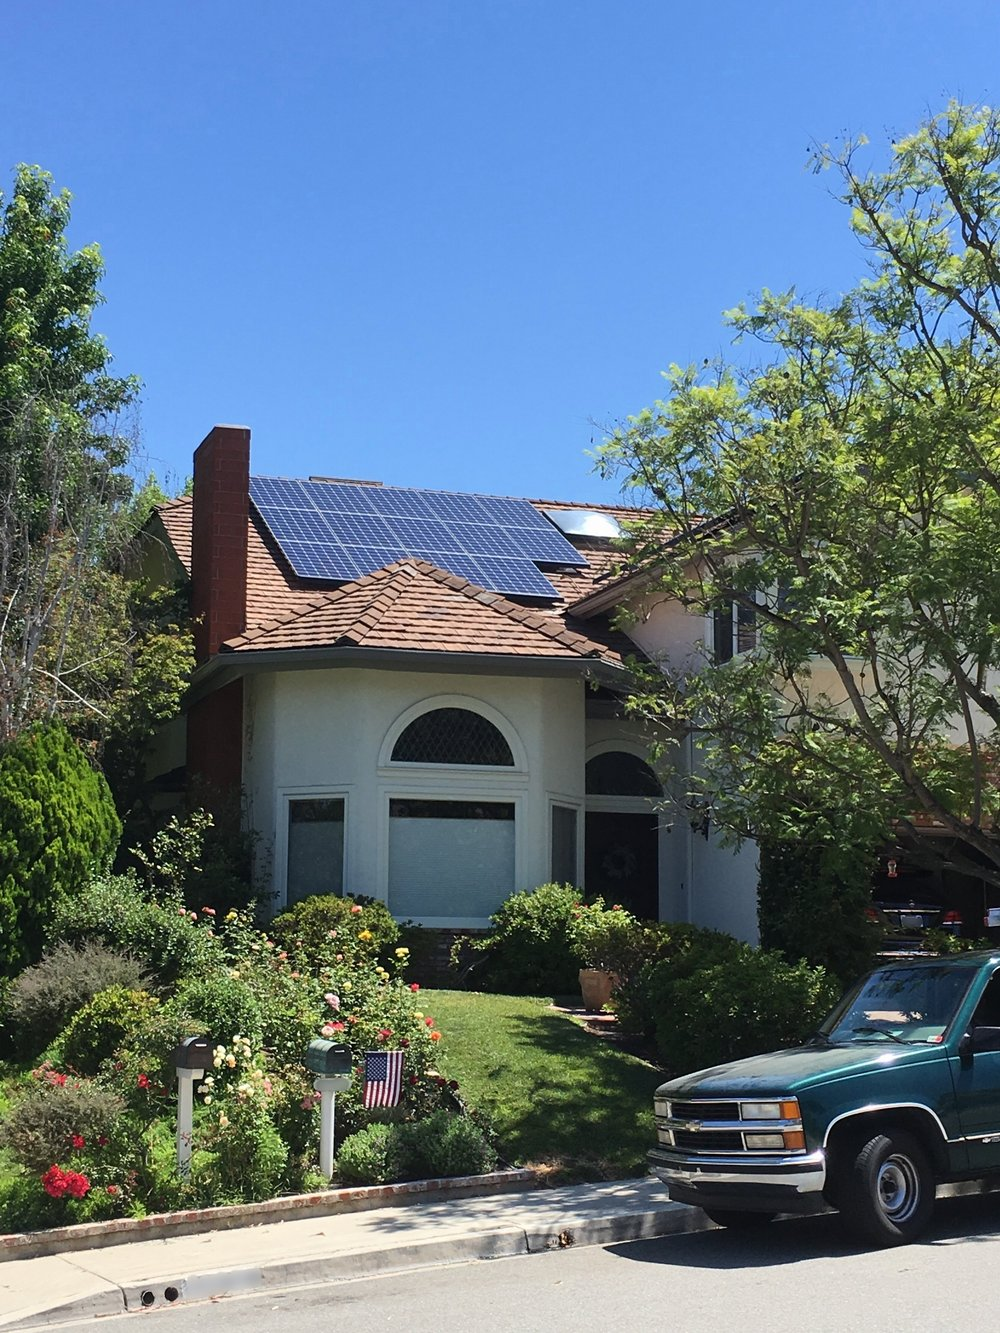 LAGUNA HILLS, CA - 30 high efficiency PV modules total to 10.8 kWDC located in Laguna Hills.  This system was commissioned in 2018 and is expected to save the Homeowner over $210,000 in electricity bills over the next 25 years.